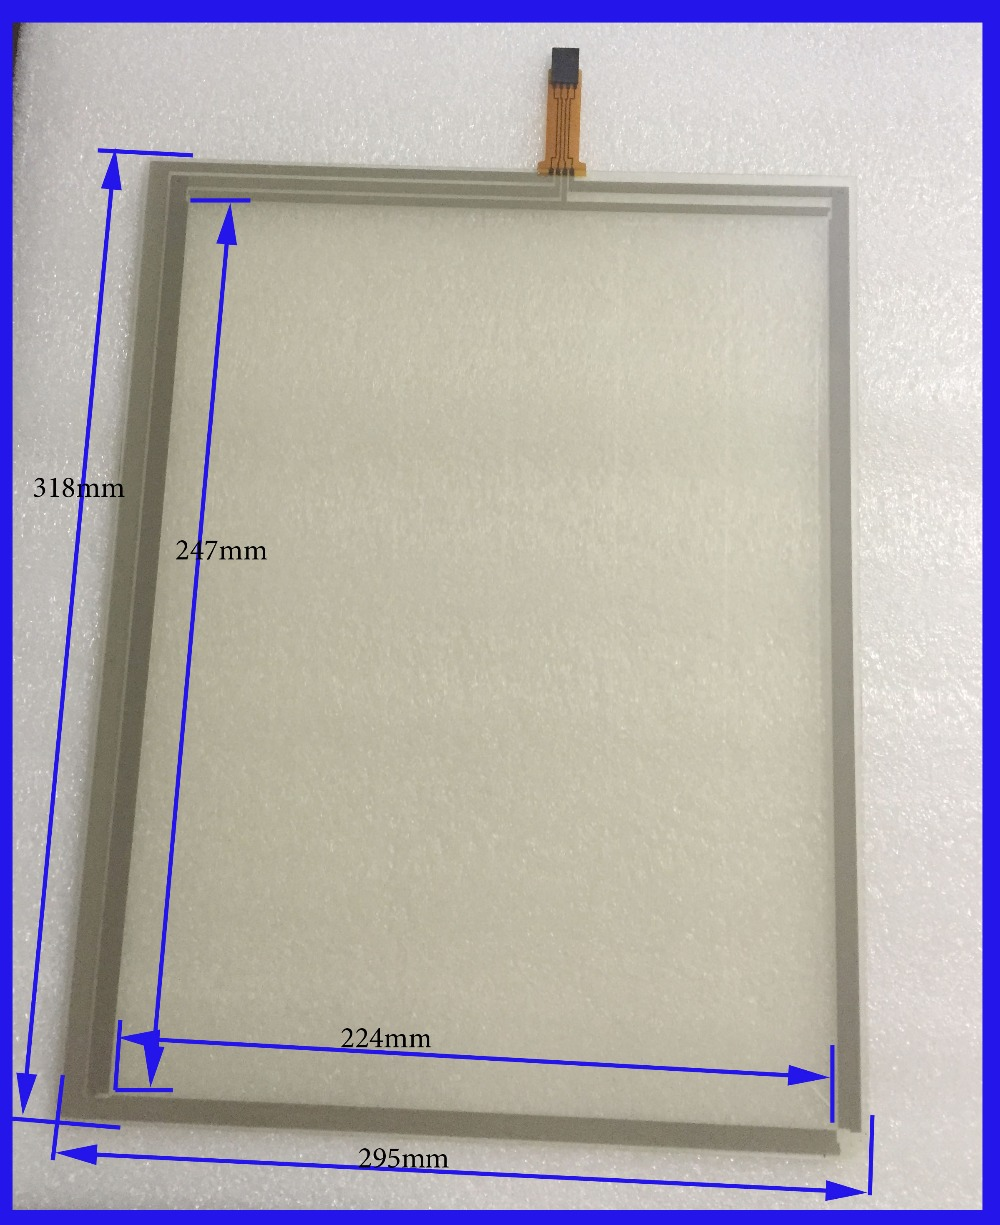 ZhiYuSun 318mm*247mm 14 Inch Touch Screen panels 4 wire resistive USB touch panel overlay kit  Free Shipping new 10 1 inch 4 wire resistive touch screen panel for 10inch b101aw03 235 143mm screen touch panel glass free shipping